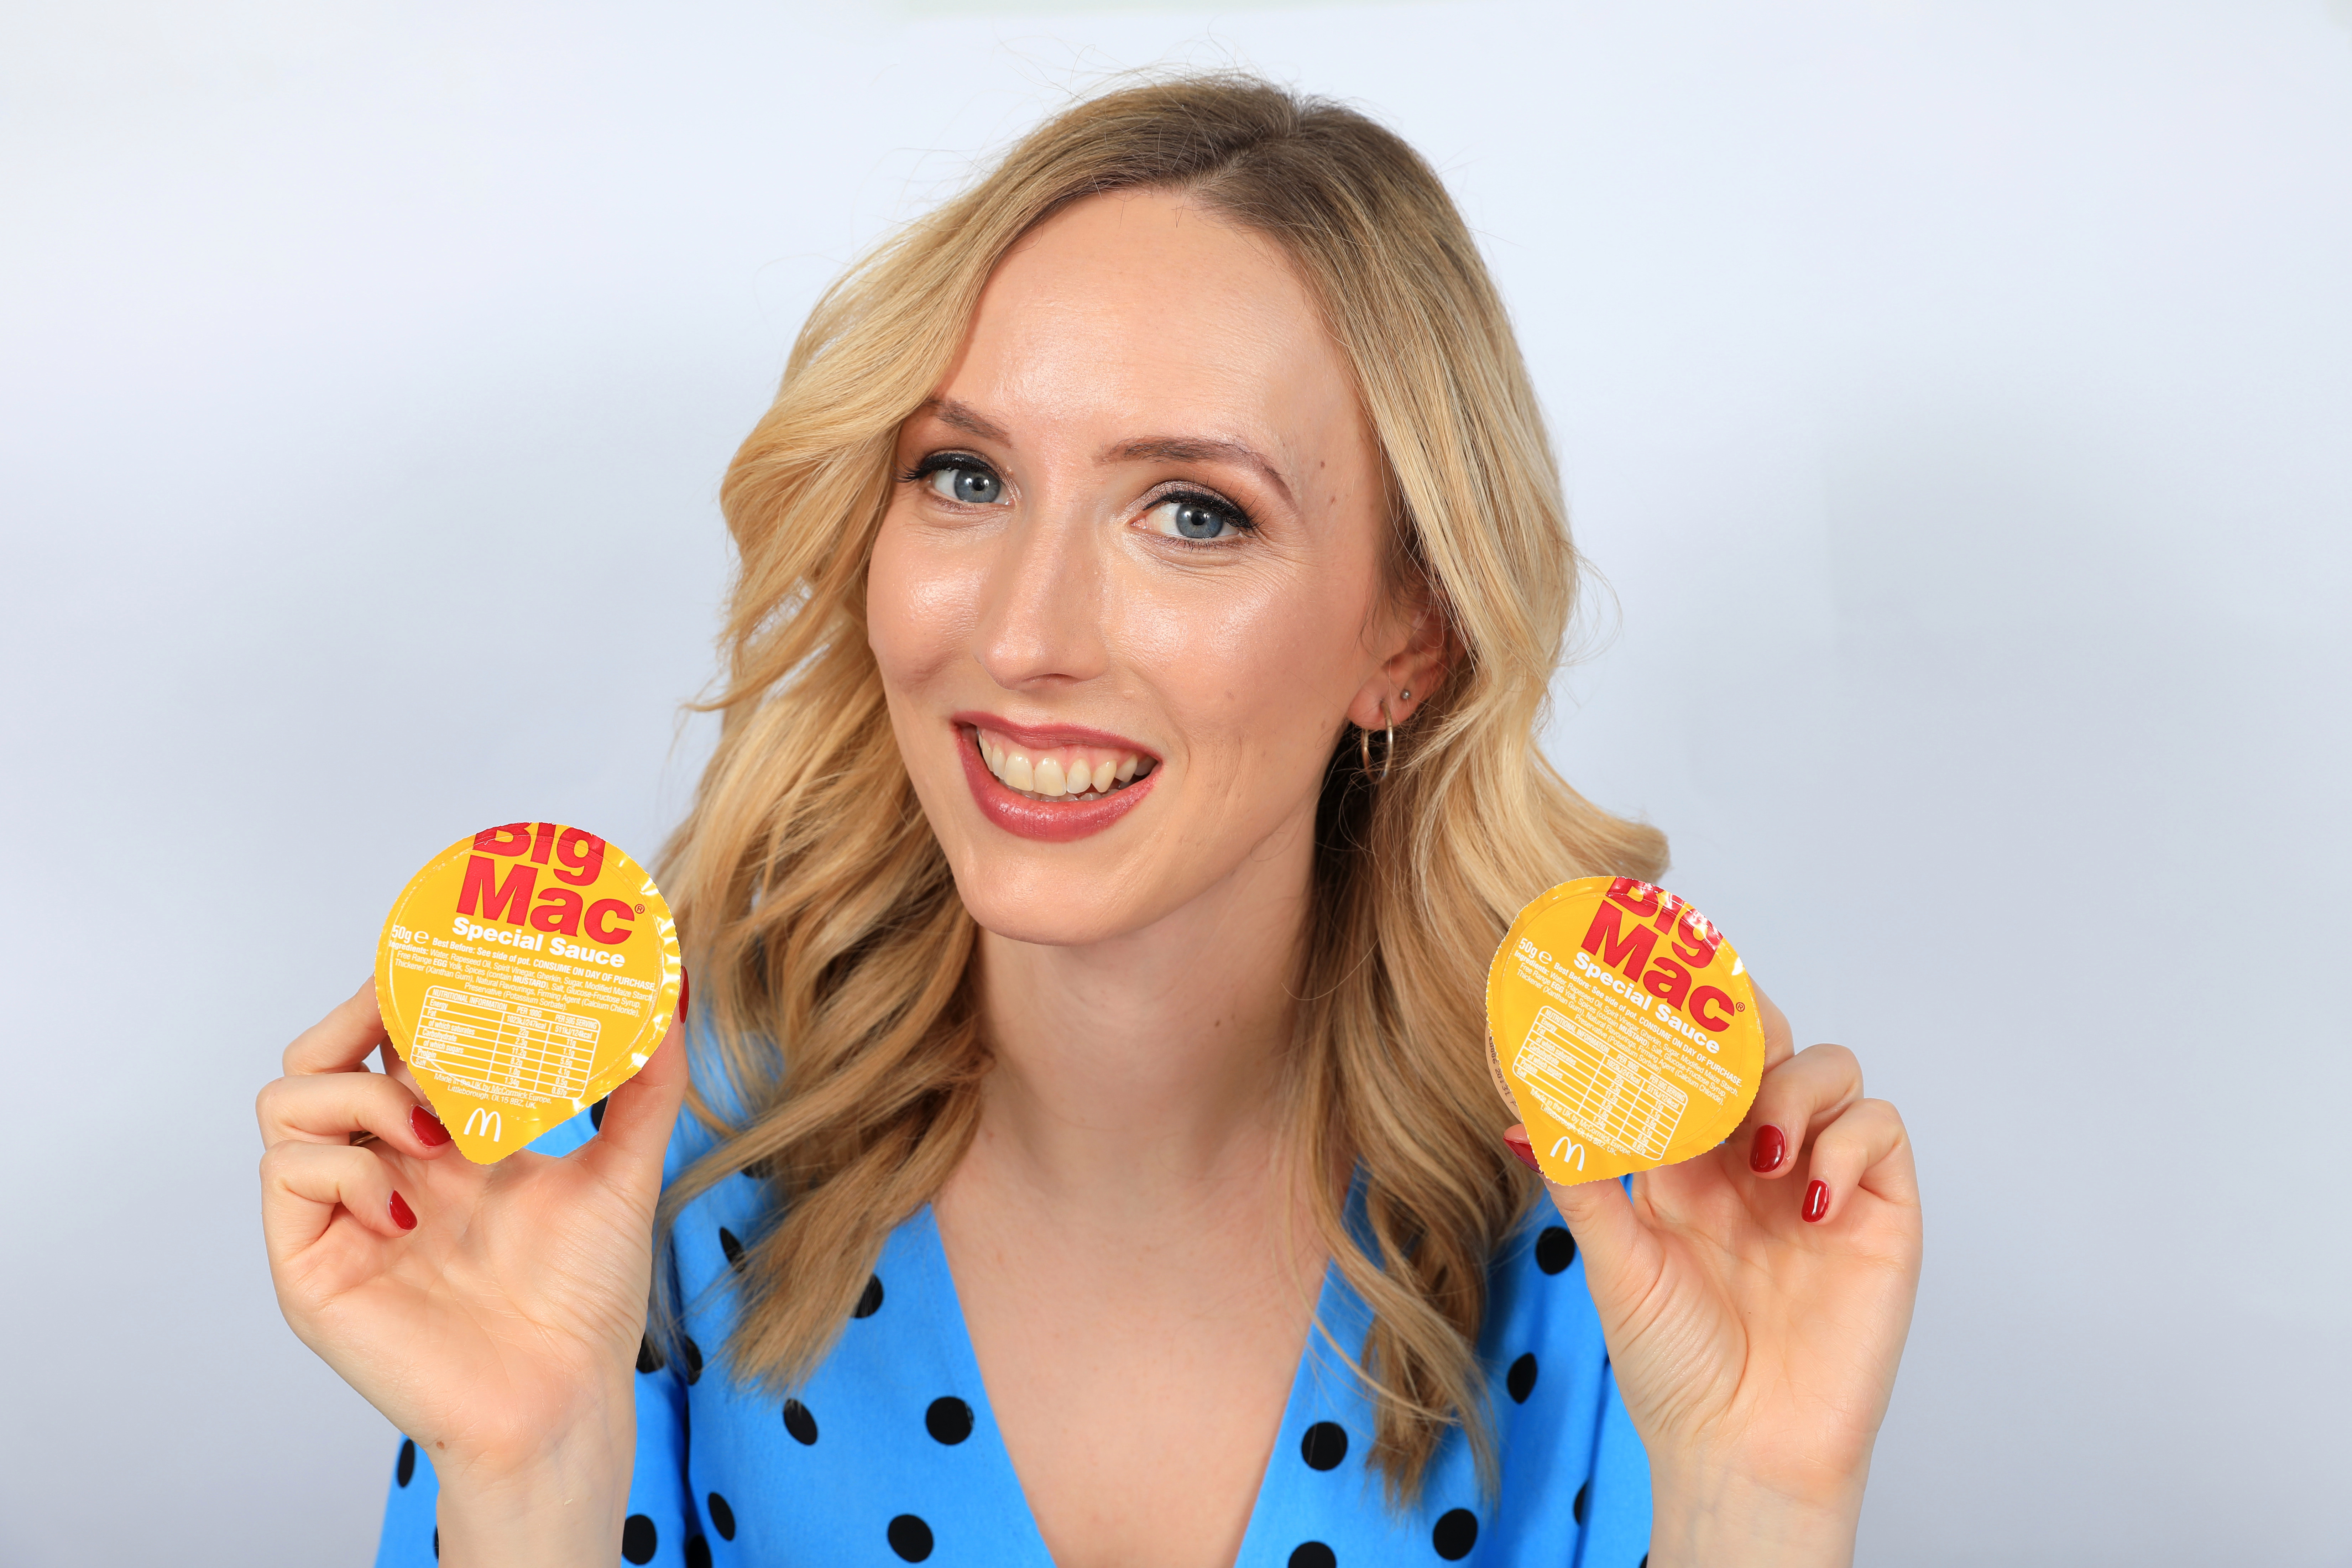 The Sun's Emma Pietras puts McDonald's Big Mac Special Sauce to the test with some of our favourite grub